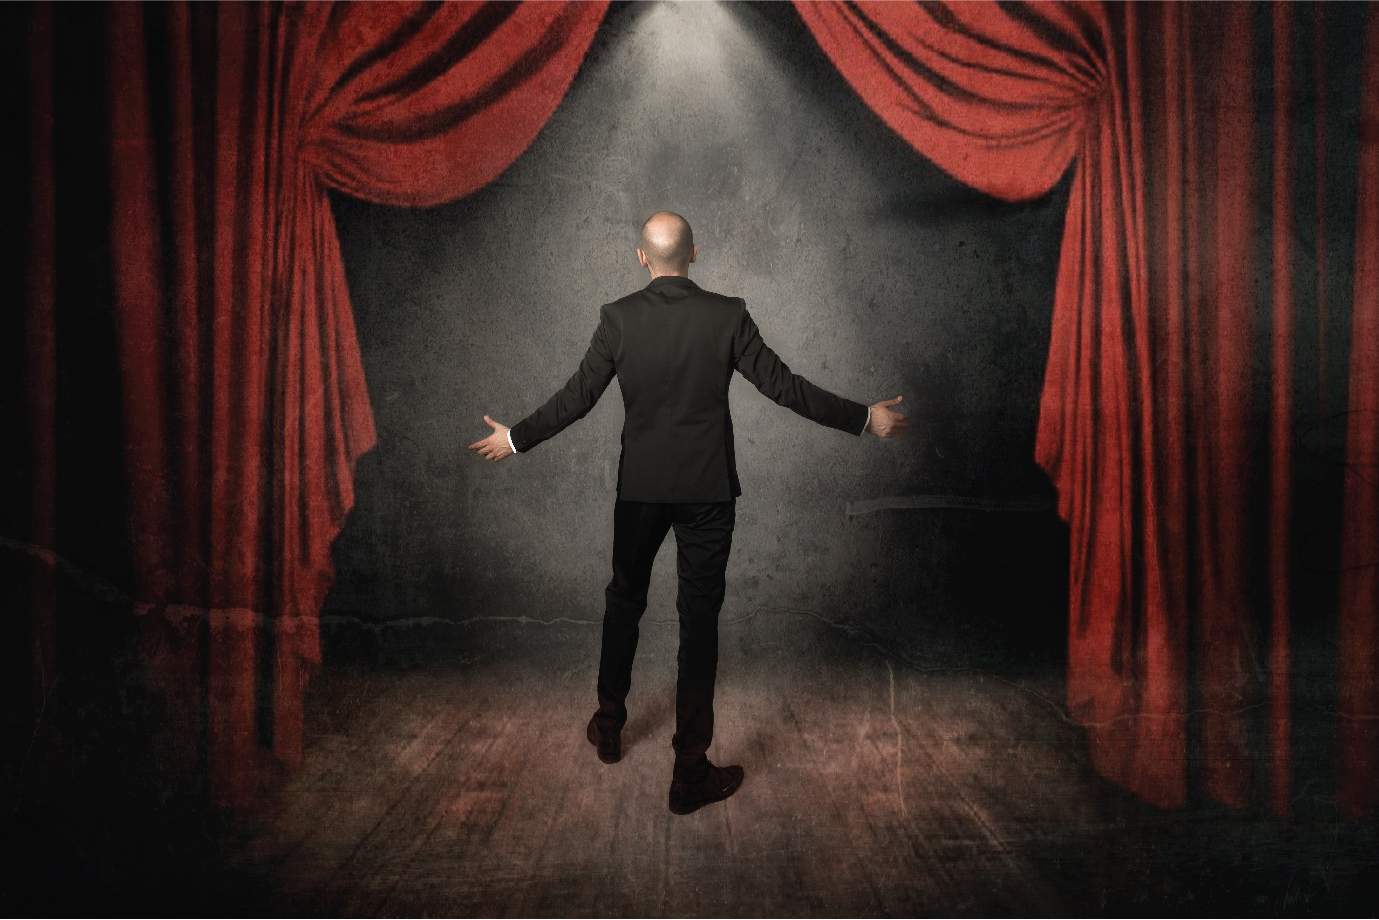 A tenor entering the stage